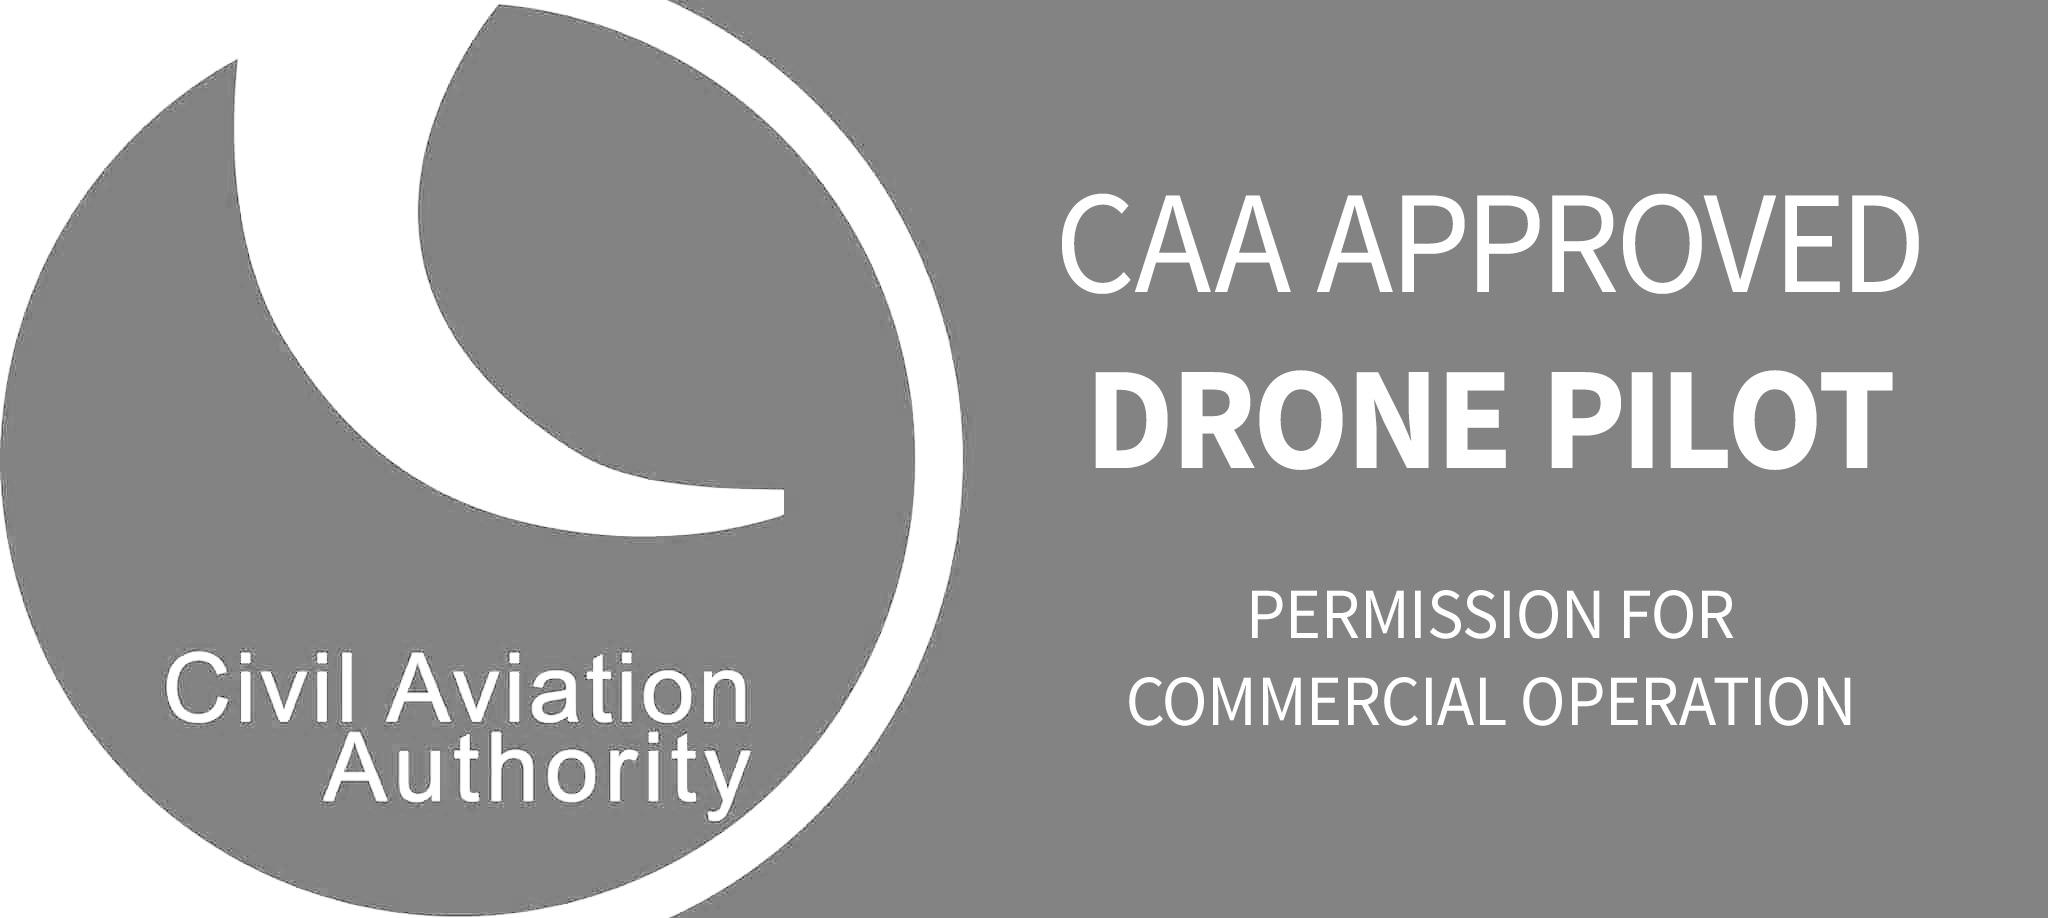 Caa-Approved-LOGO.jpg